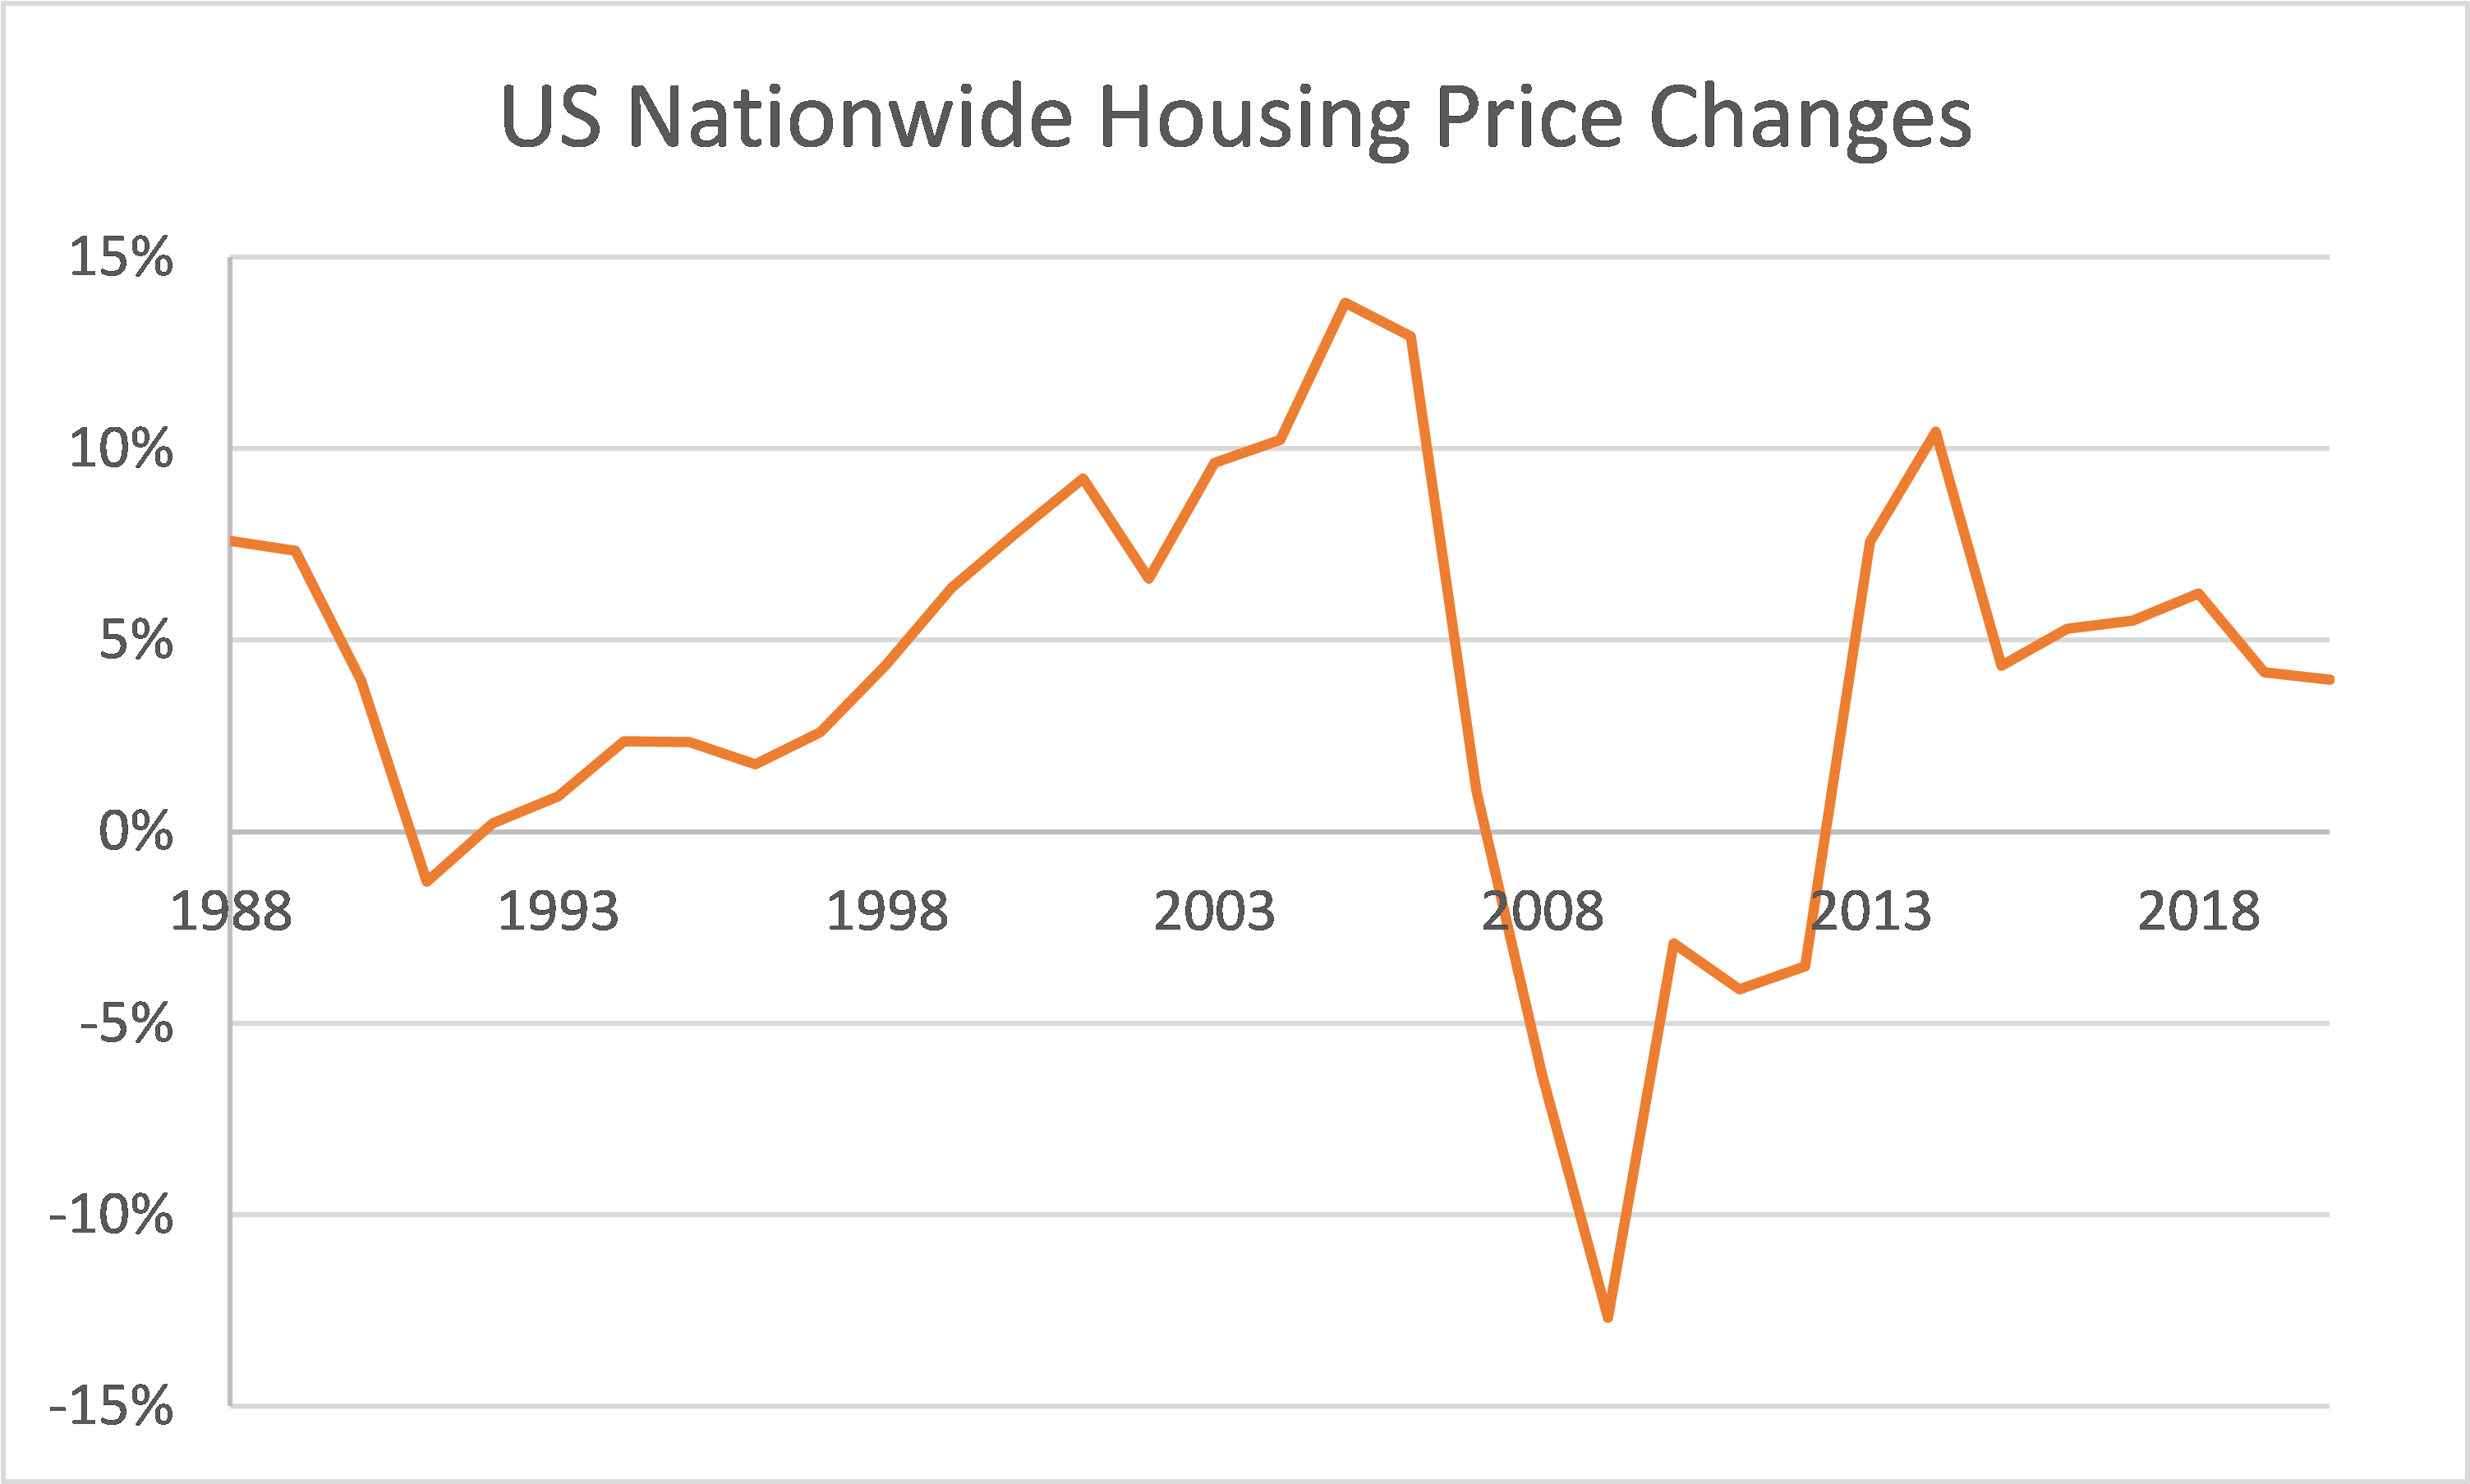 Historical Housing Price Changes